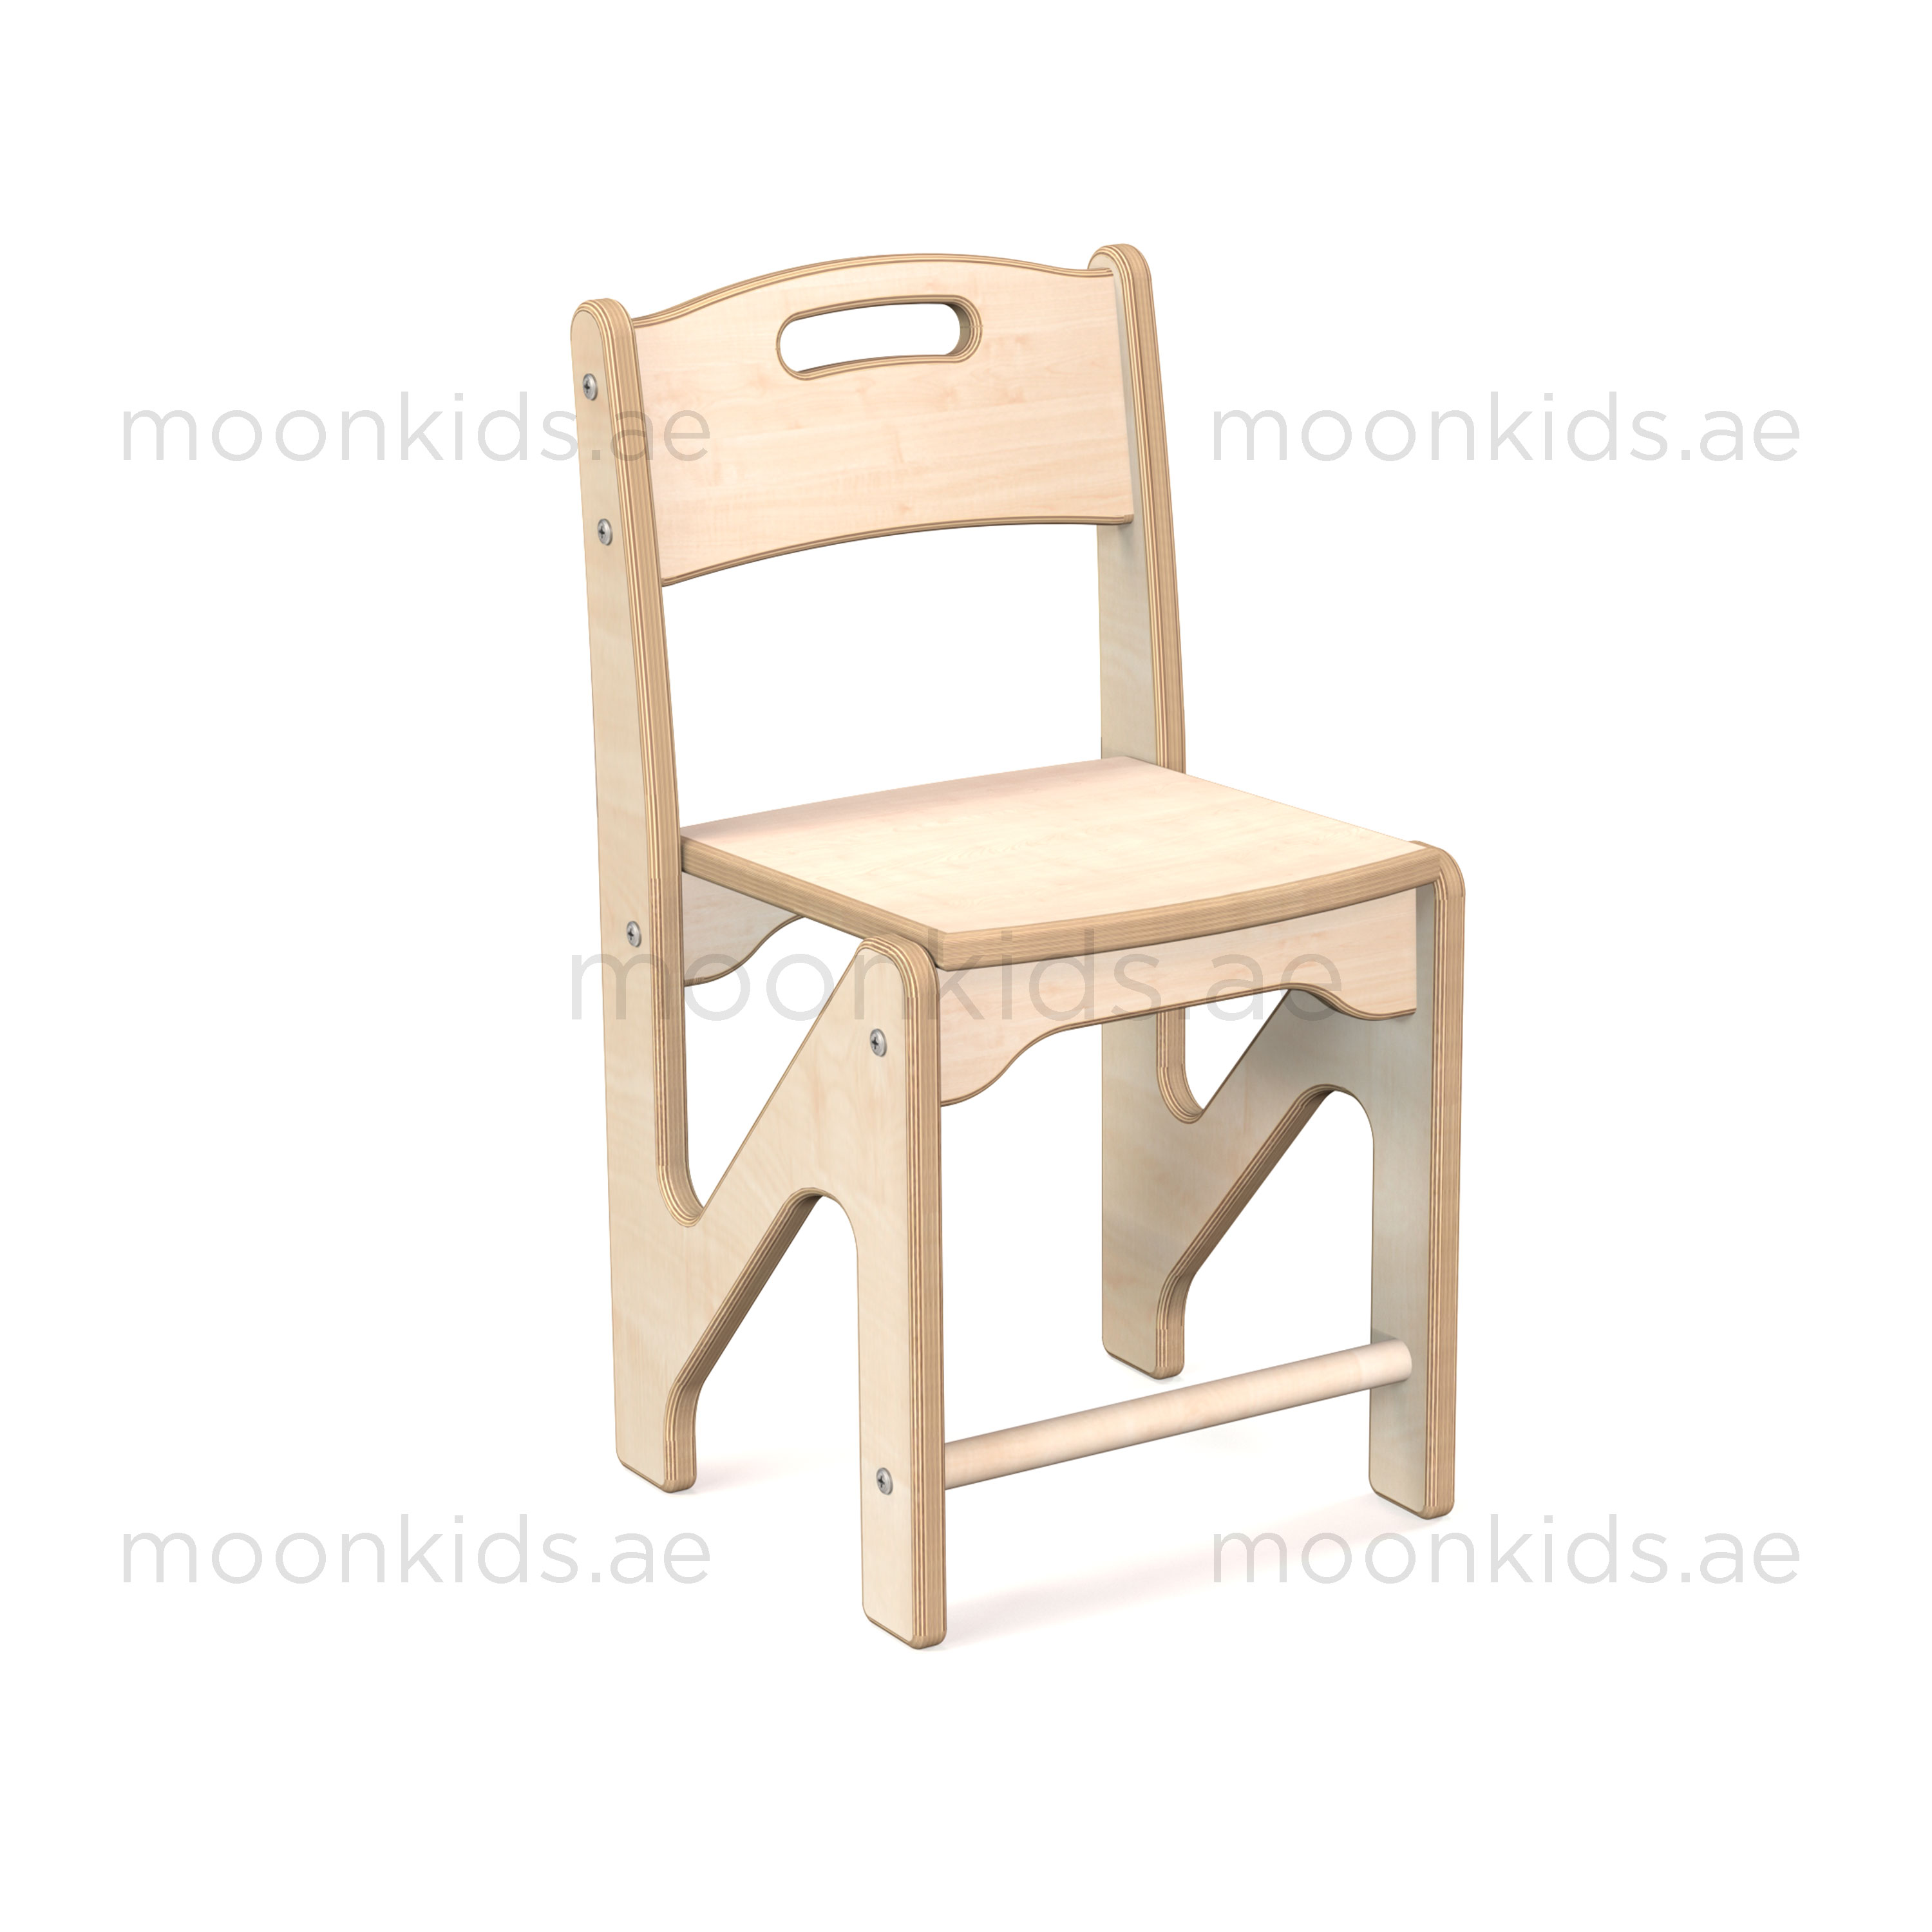 MOONKIDS-ZFRAME-CHAIR